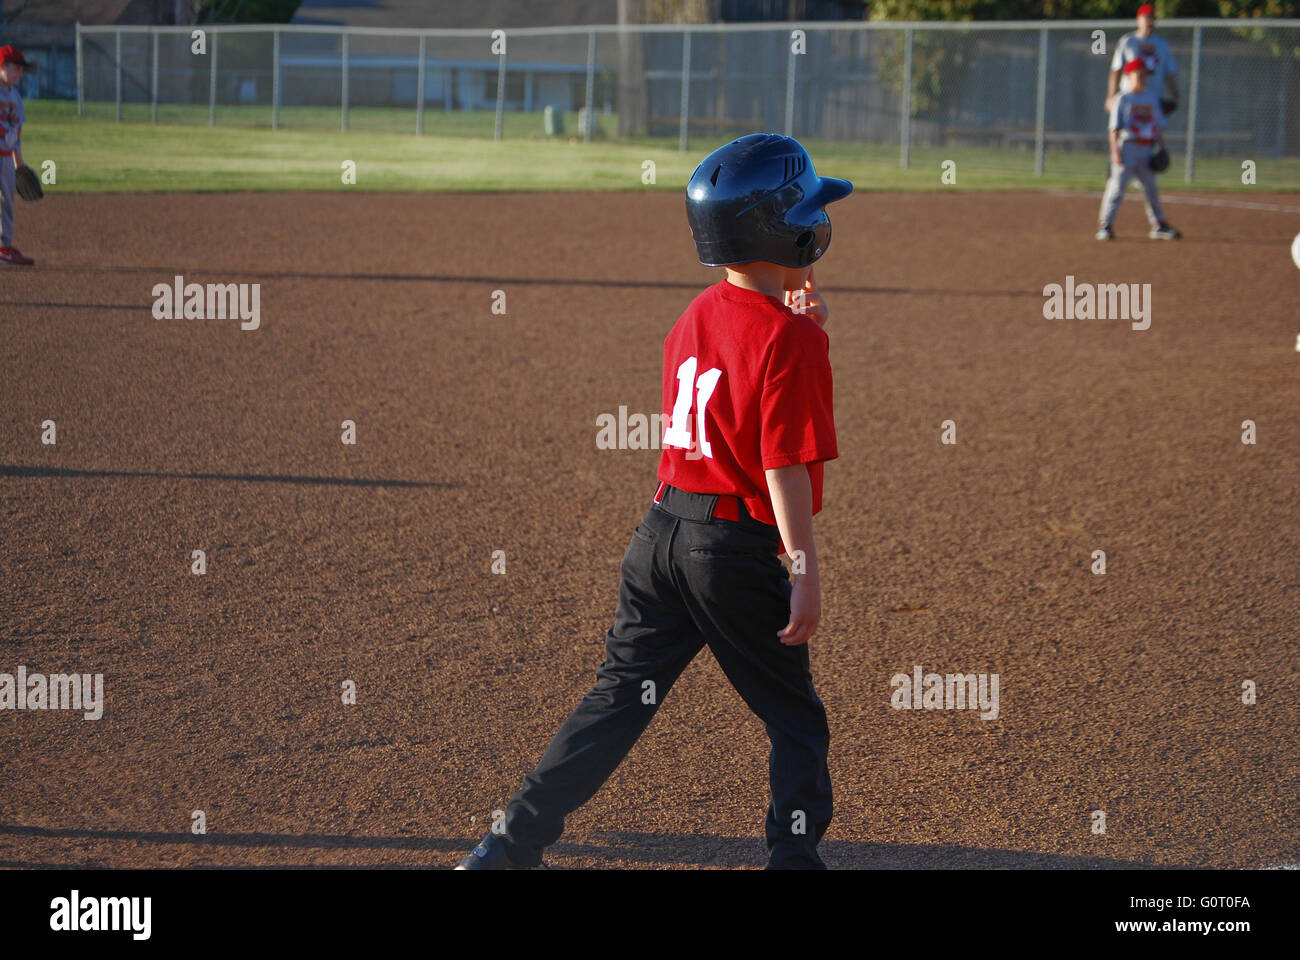 Youth baseball player standing on third base waiting to run the bases. - Stock Image